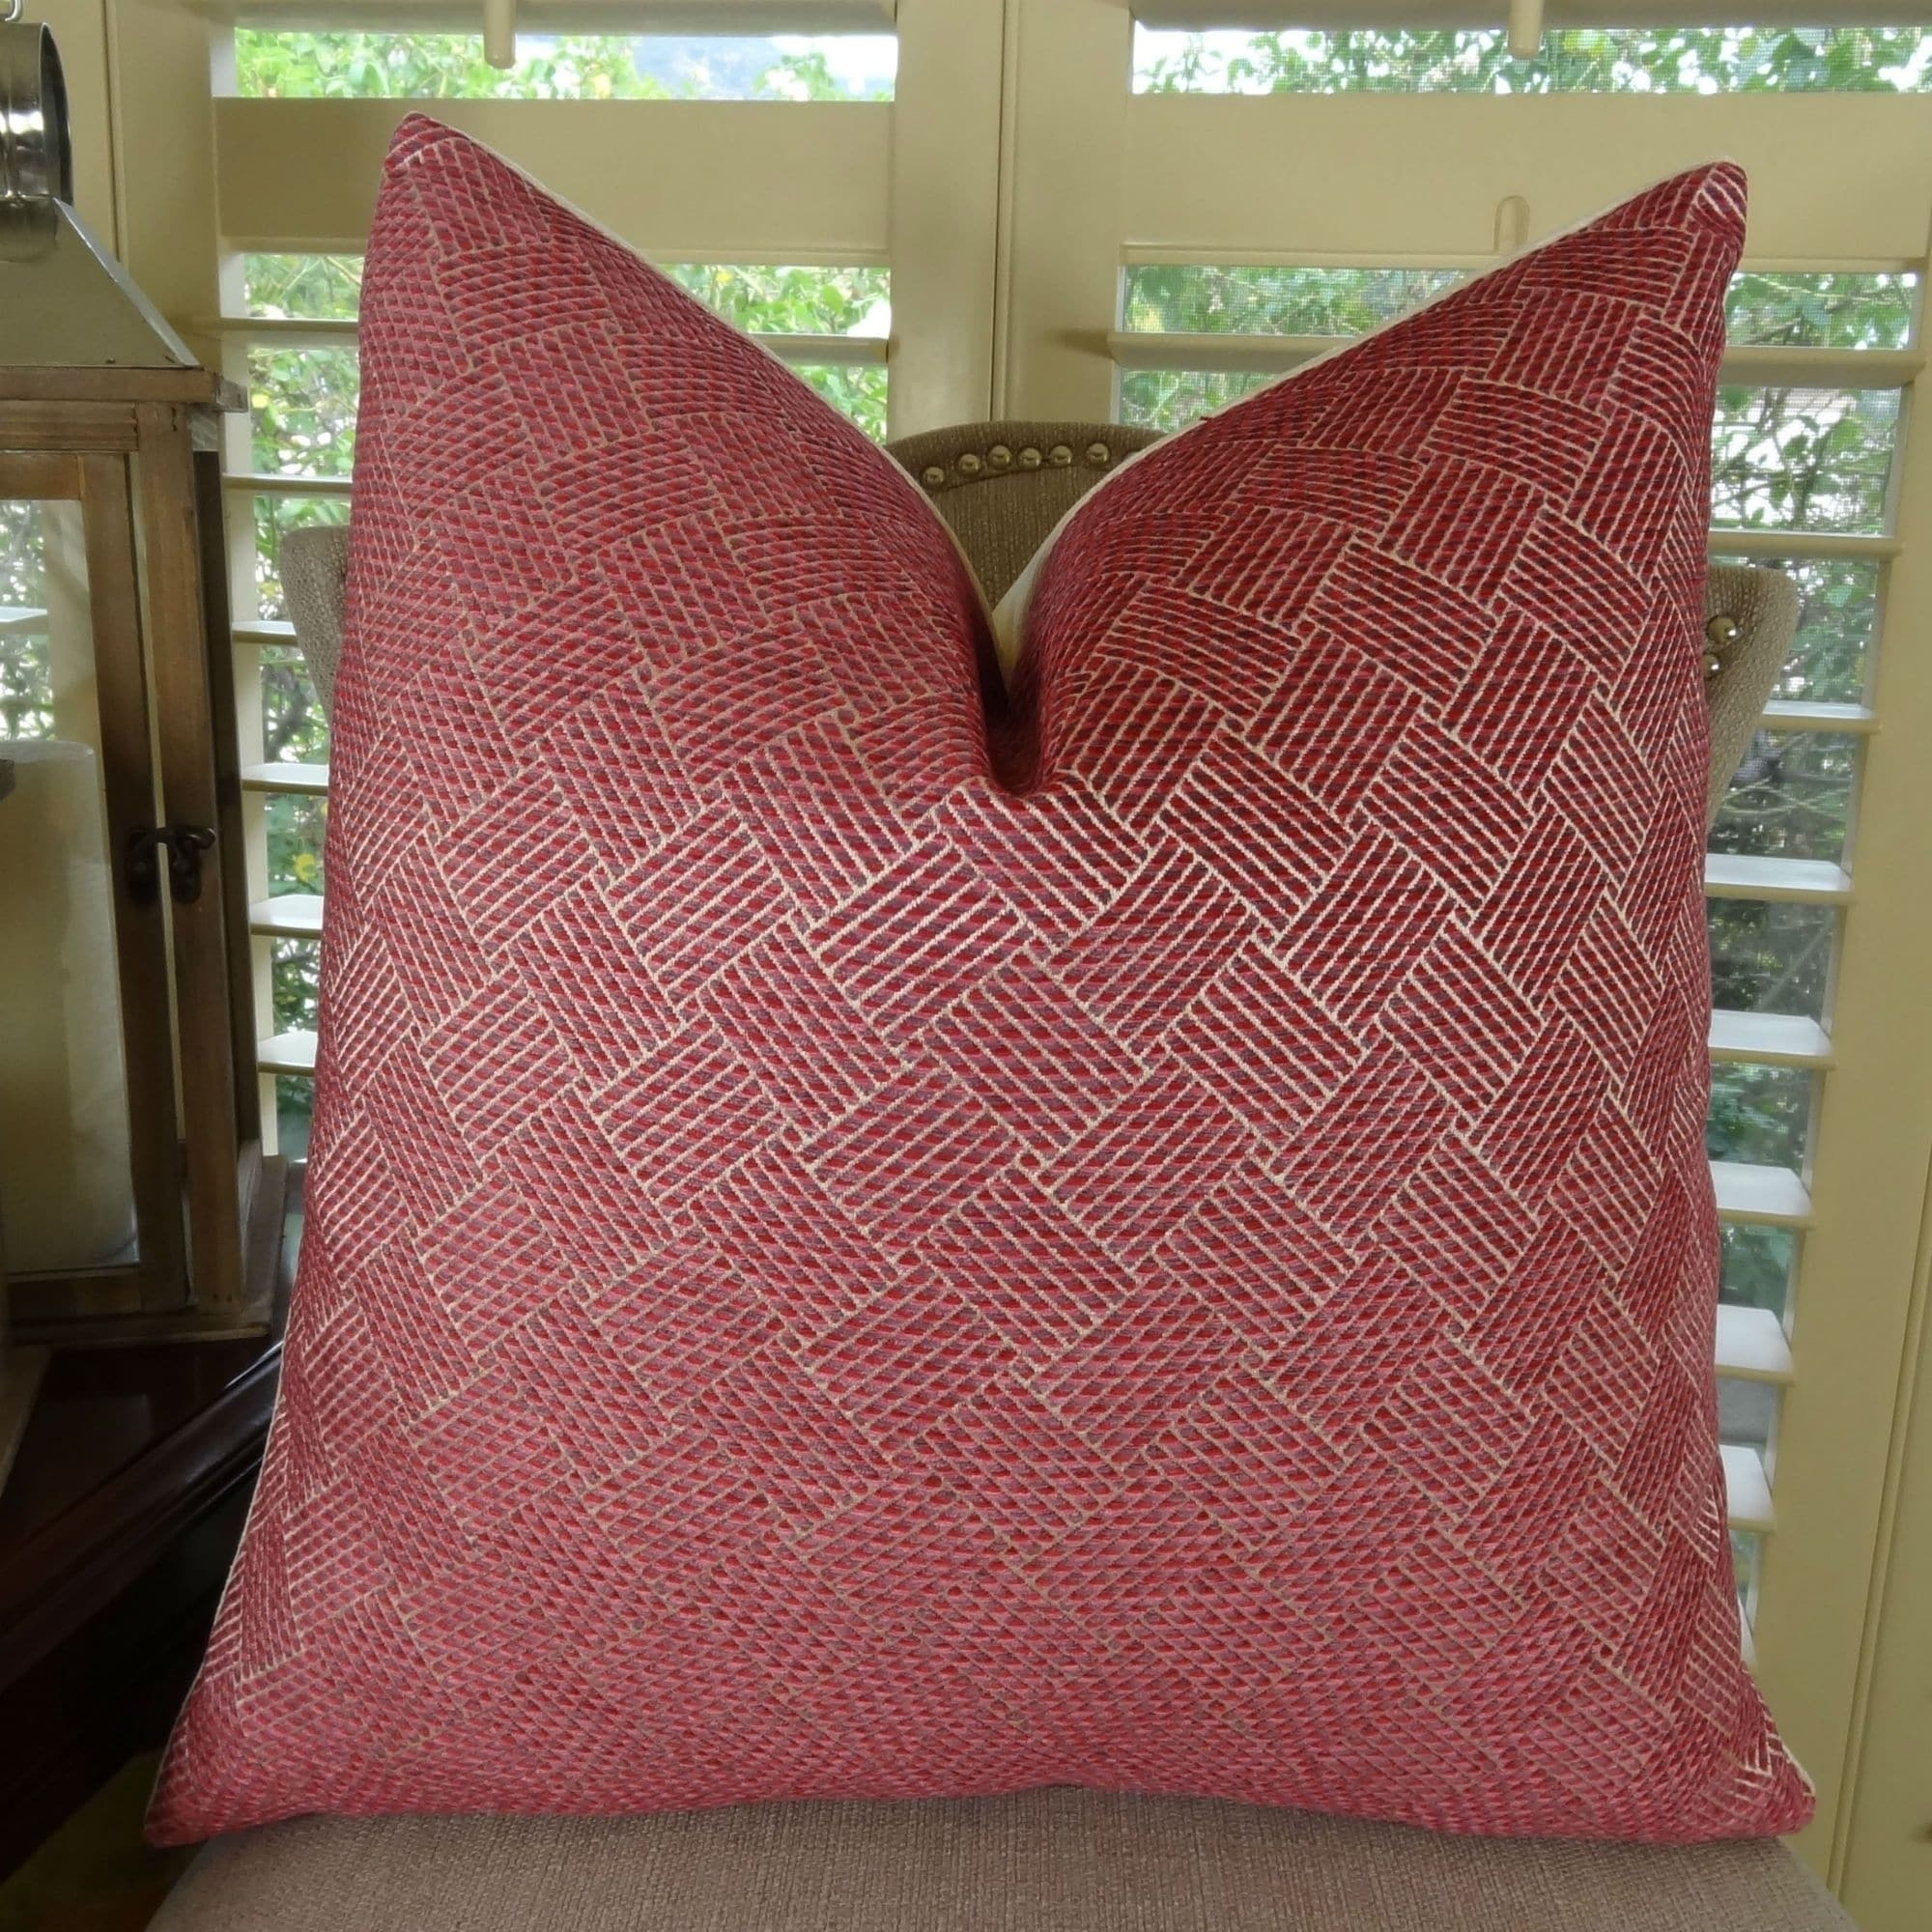 Thomas Collection Fuchsia Cream Velvet Jaggared Accent Pillow, Handmade in USA, 11274D (Medium - Square - double sided 16 x 16)